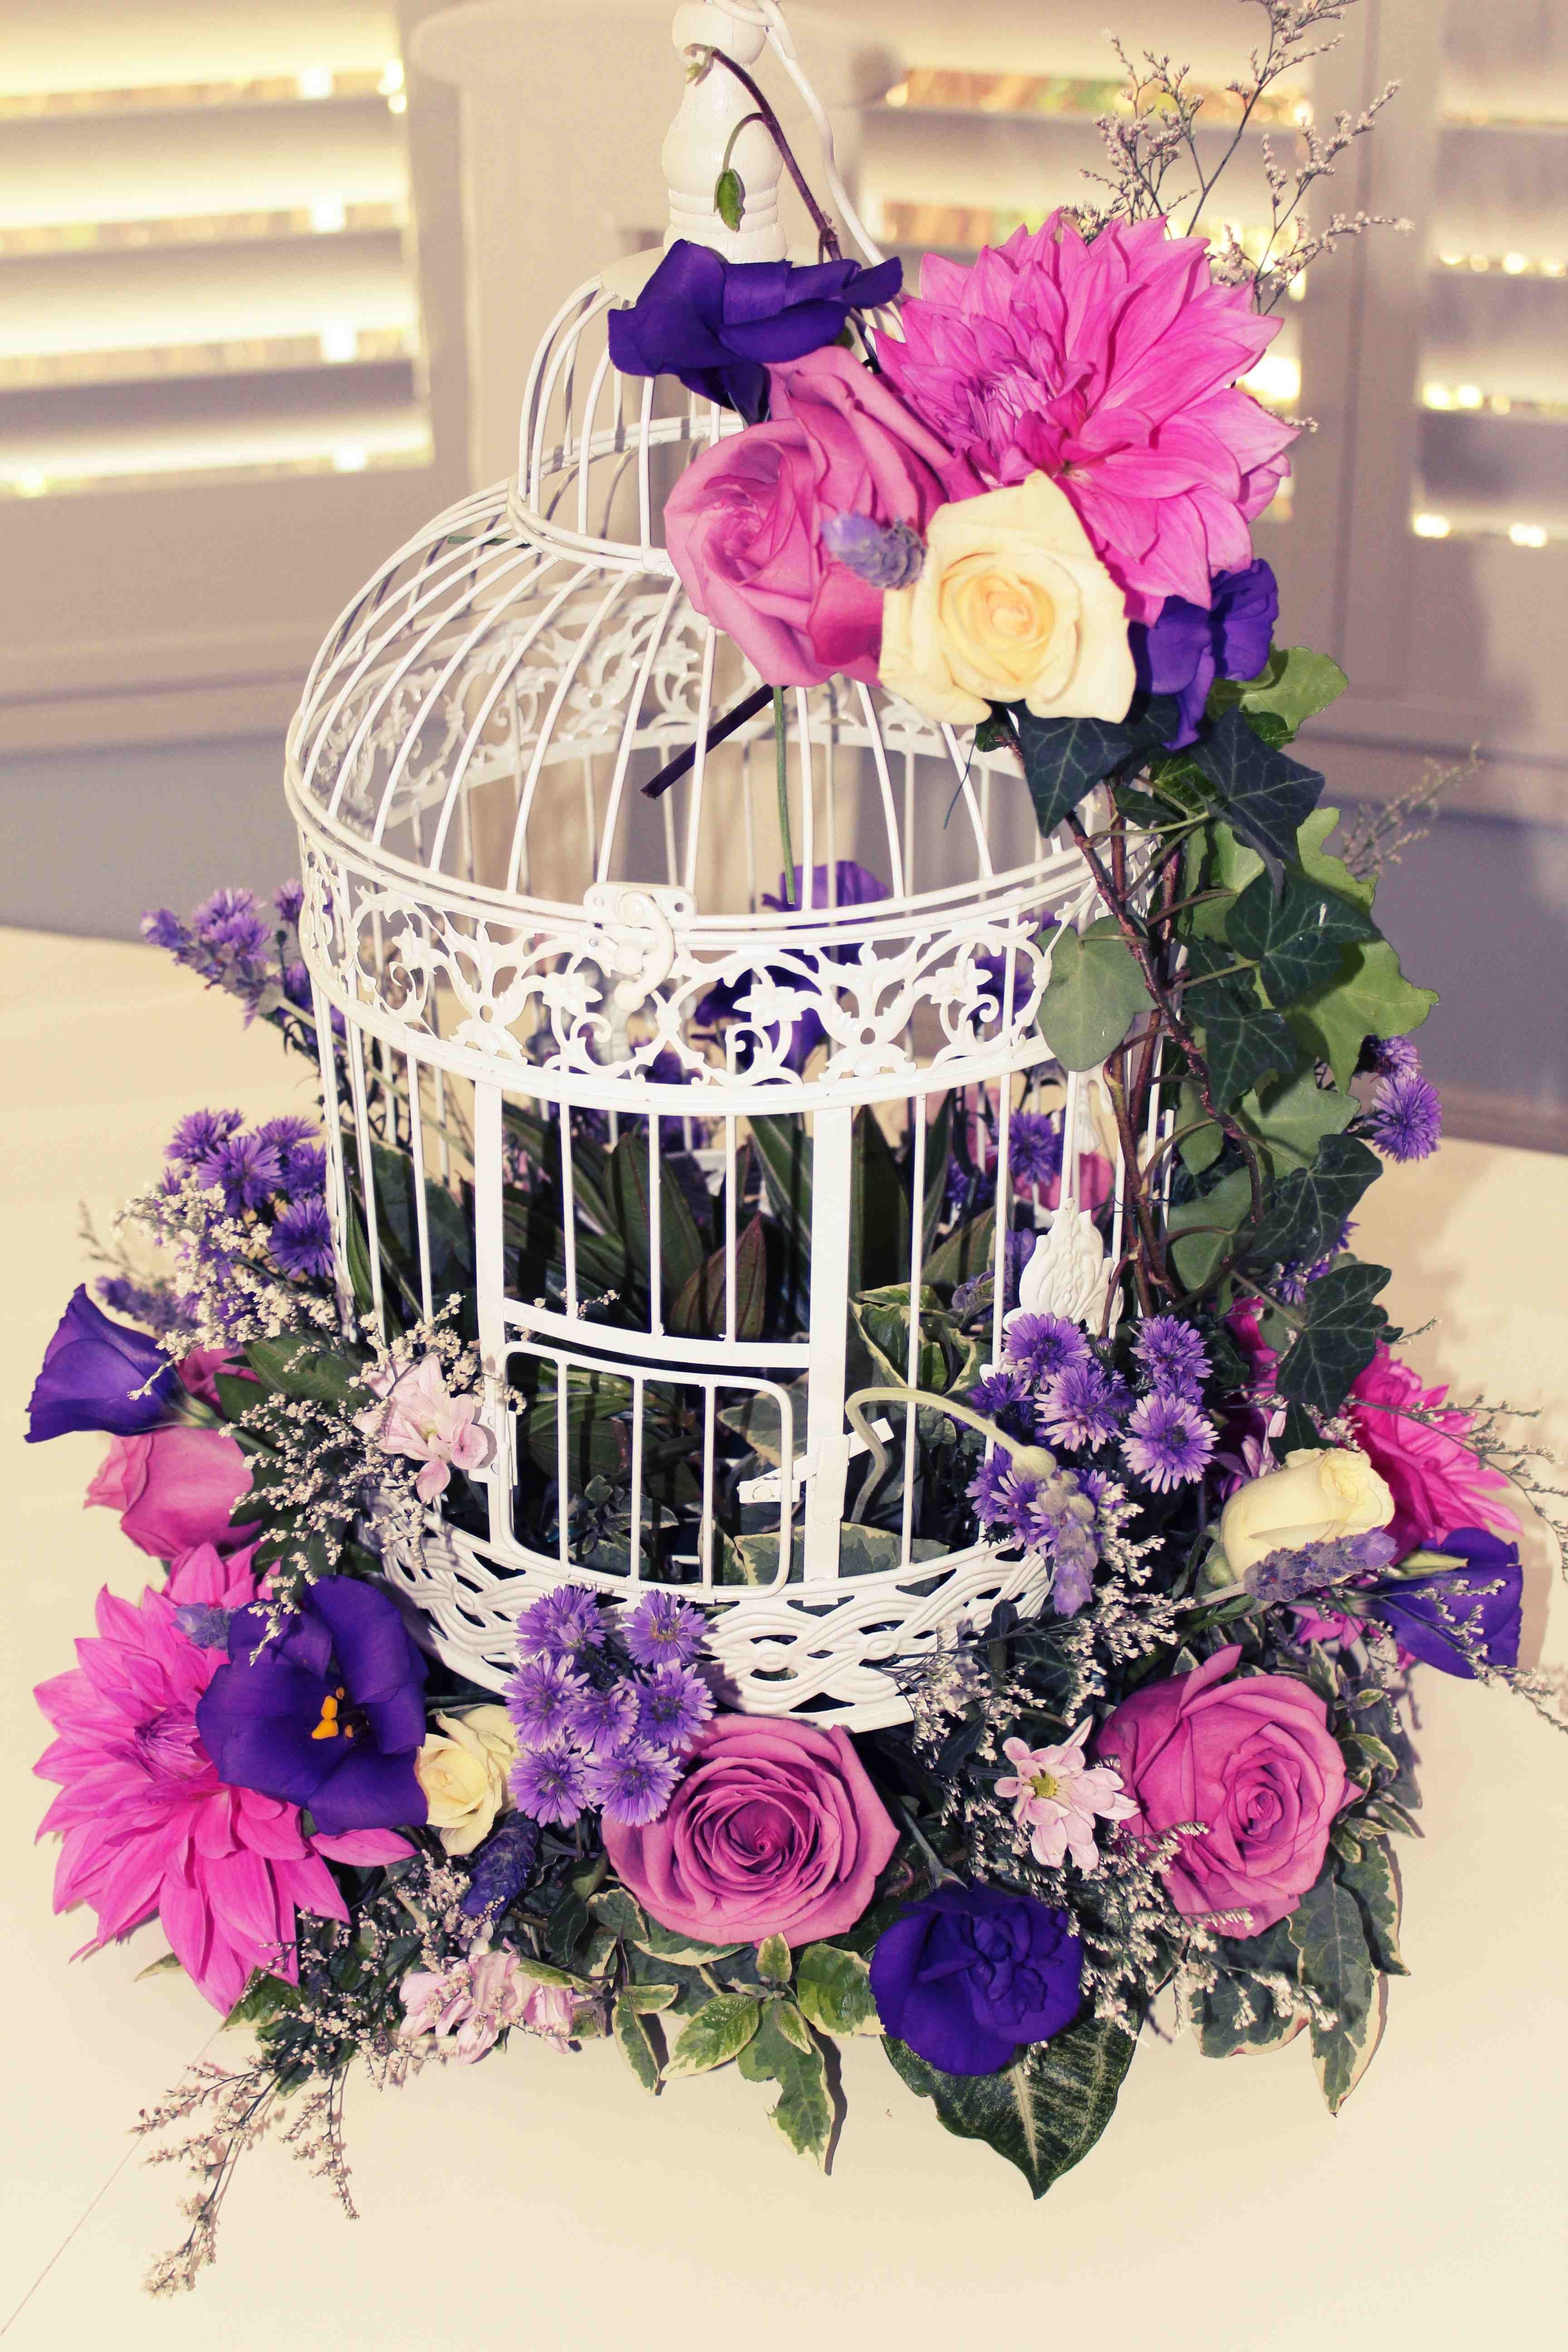 Flowers & Birdcages x avenue